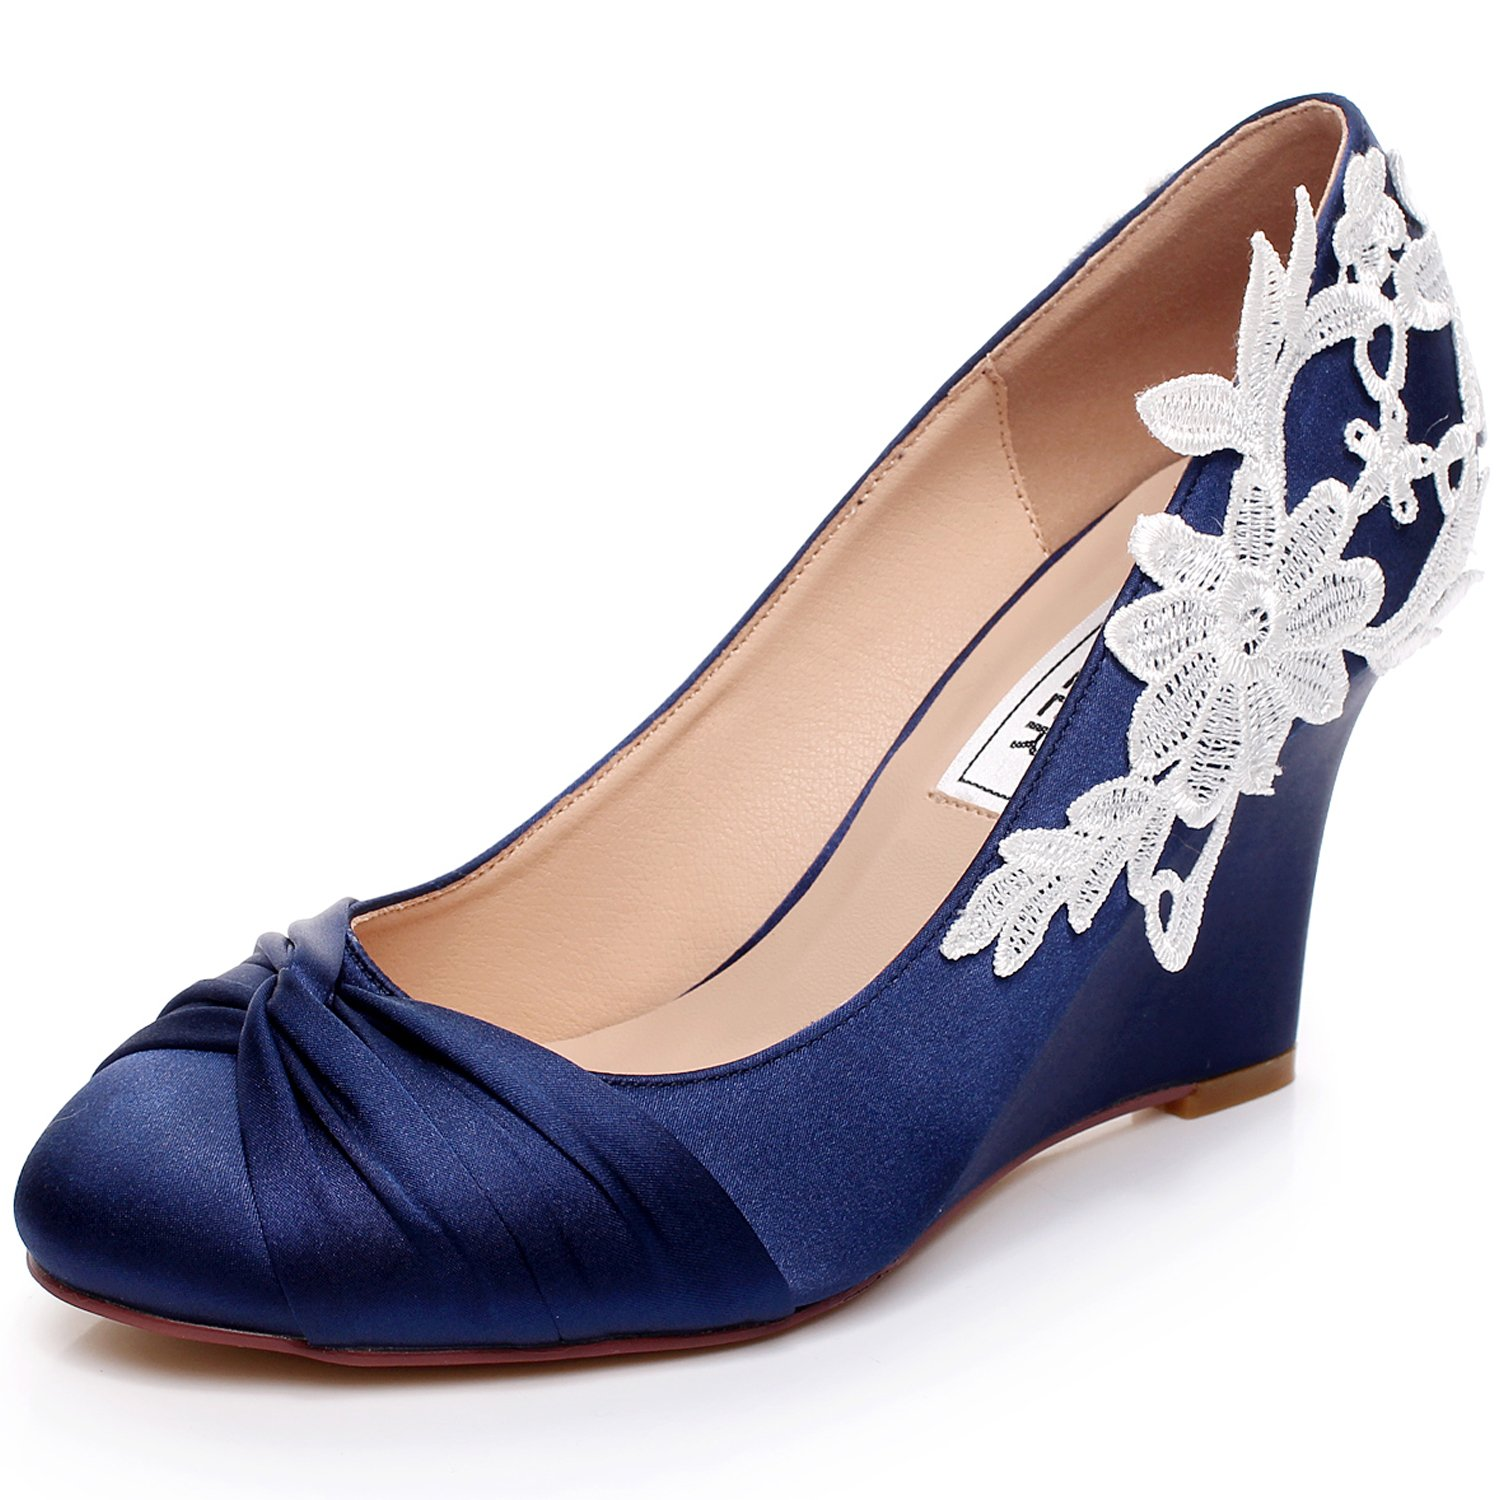 f70eb09fa4be LUXVEER Dark Blue Wedding Shoes Wedges with White Lace Flowers Bridal Shoes  Evening Shoes Women Shoes,Medium Heels 3.5 inch